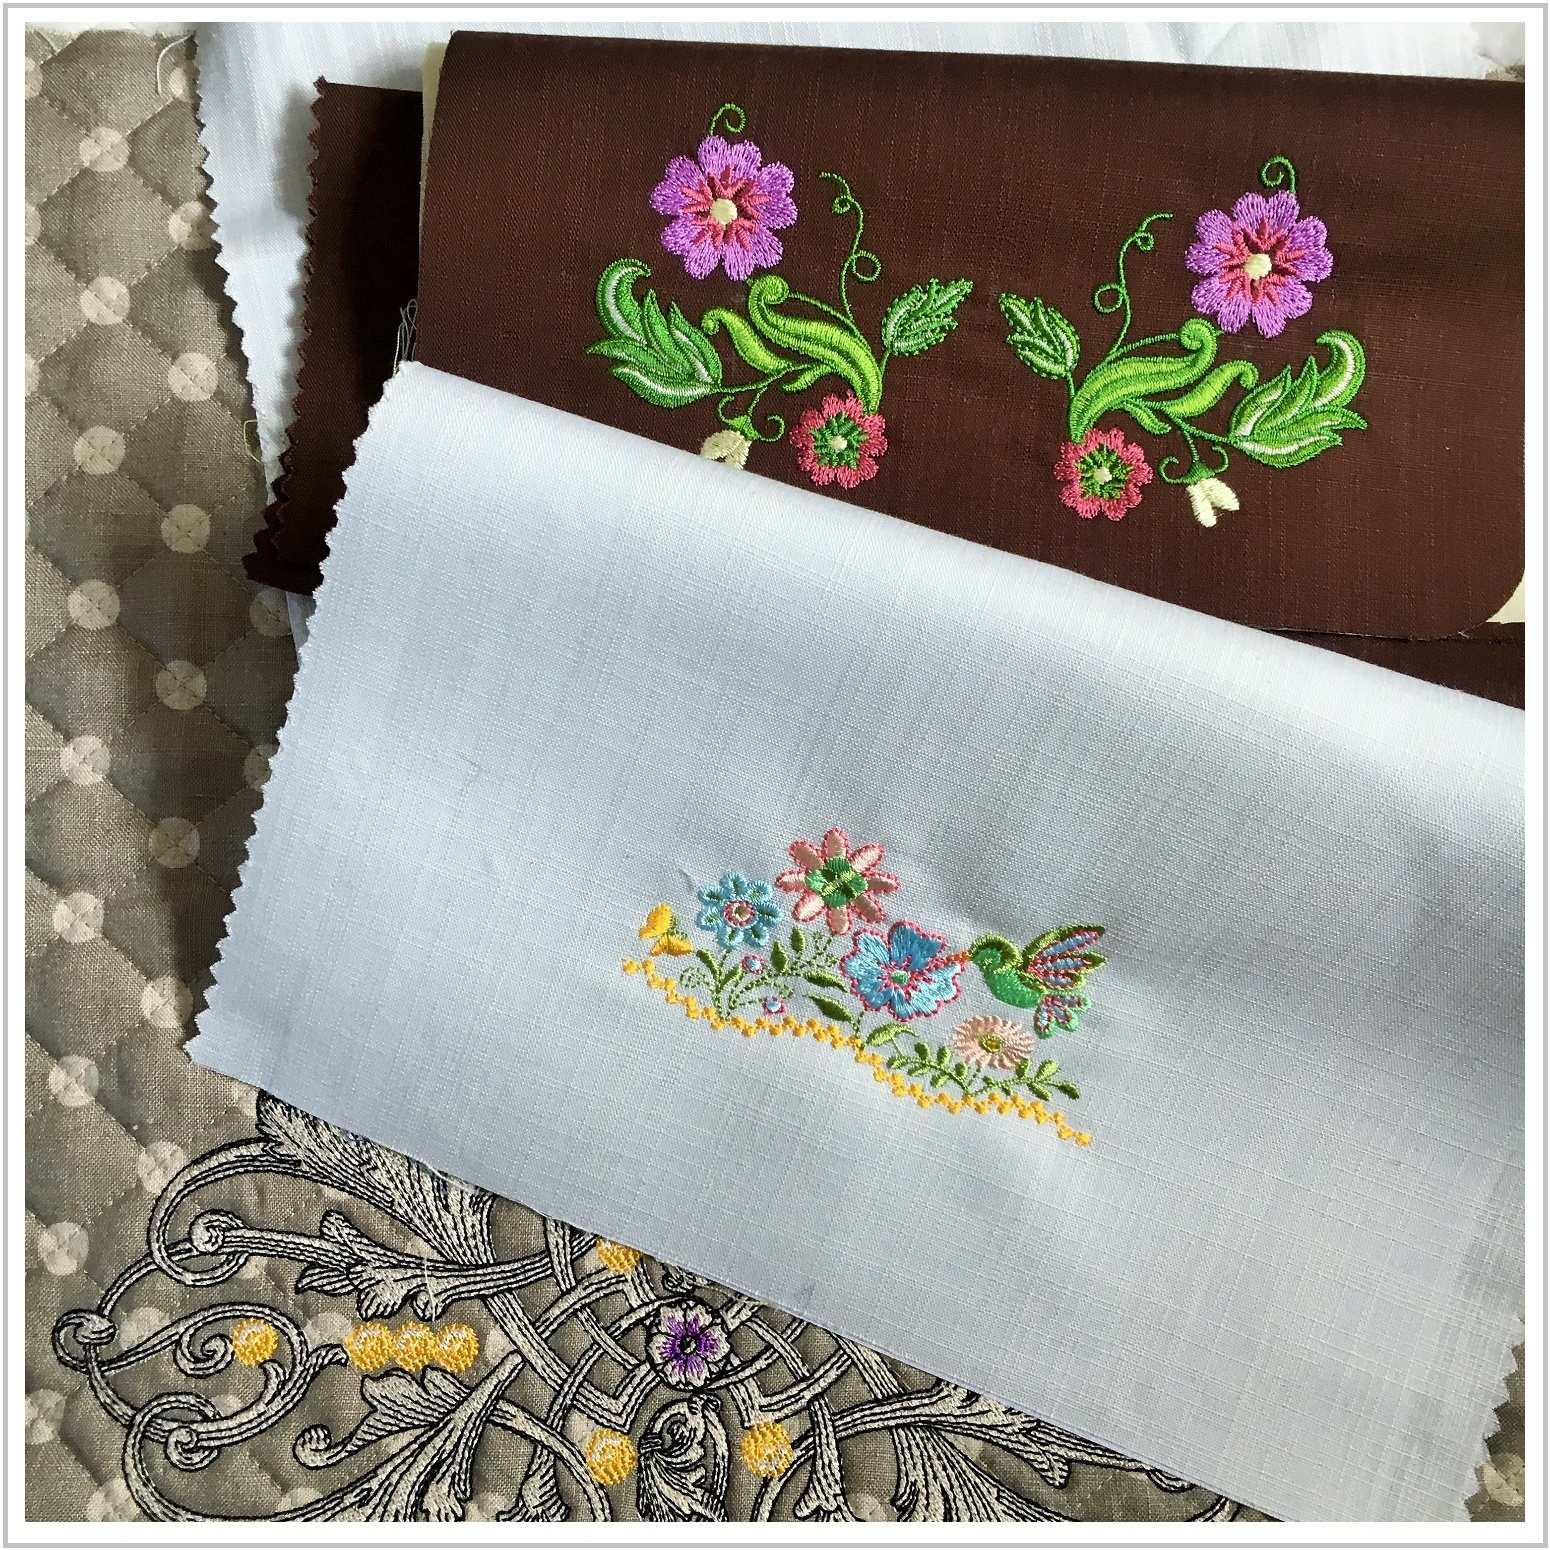 embroidery_3_615.jpg